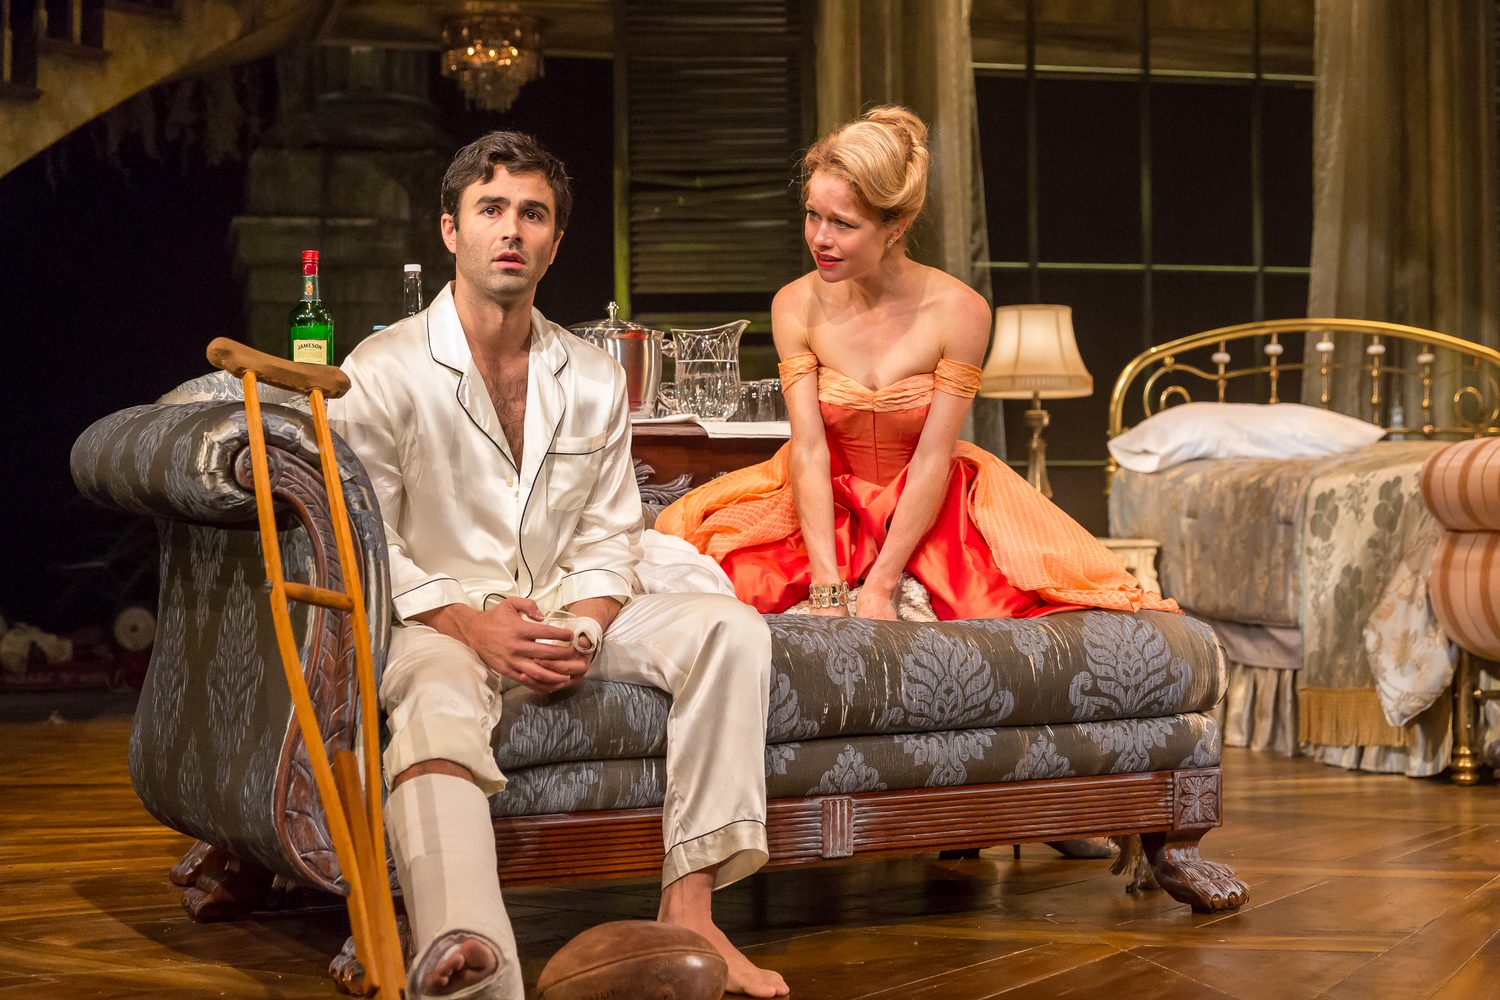 BWW Review: CAT ON A HOT TIN ROOF at Drury Lane Theatre